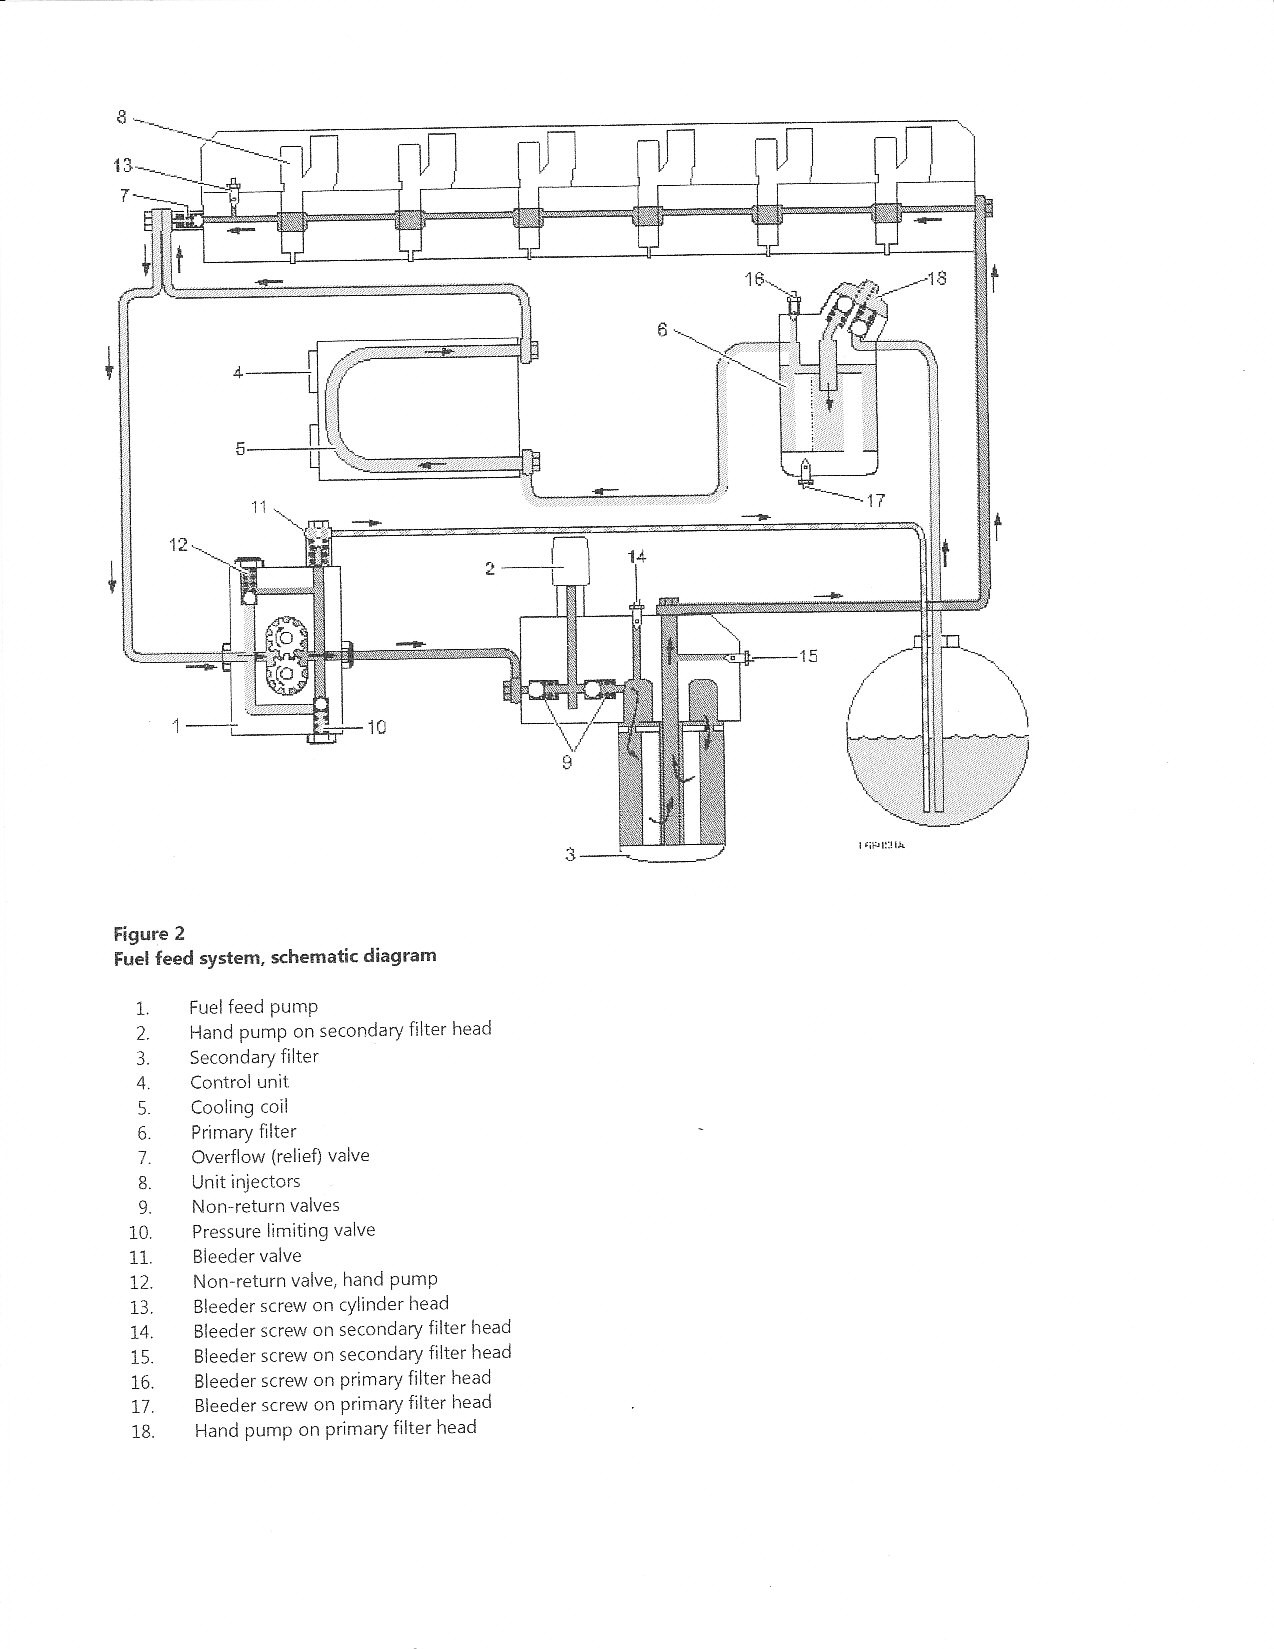 Mack Truck Fuel System Diagram I Have A 2004 Volvo Vnl In the Shop with An Egr D12 Engine This is Of Mack Truck Fuel System Diagram